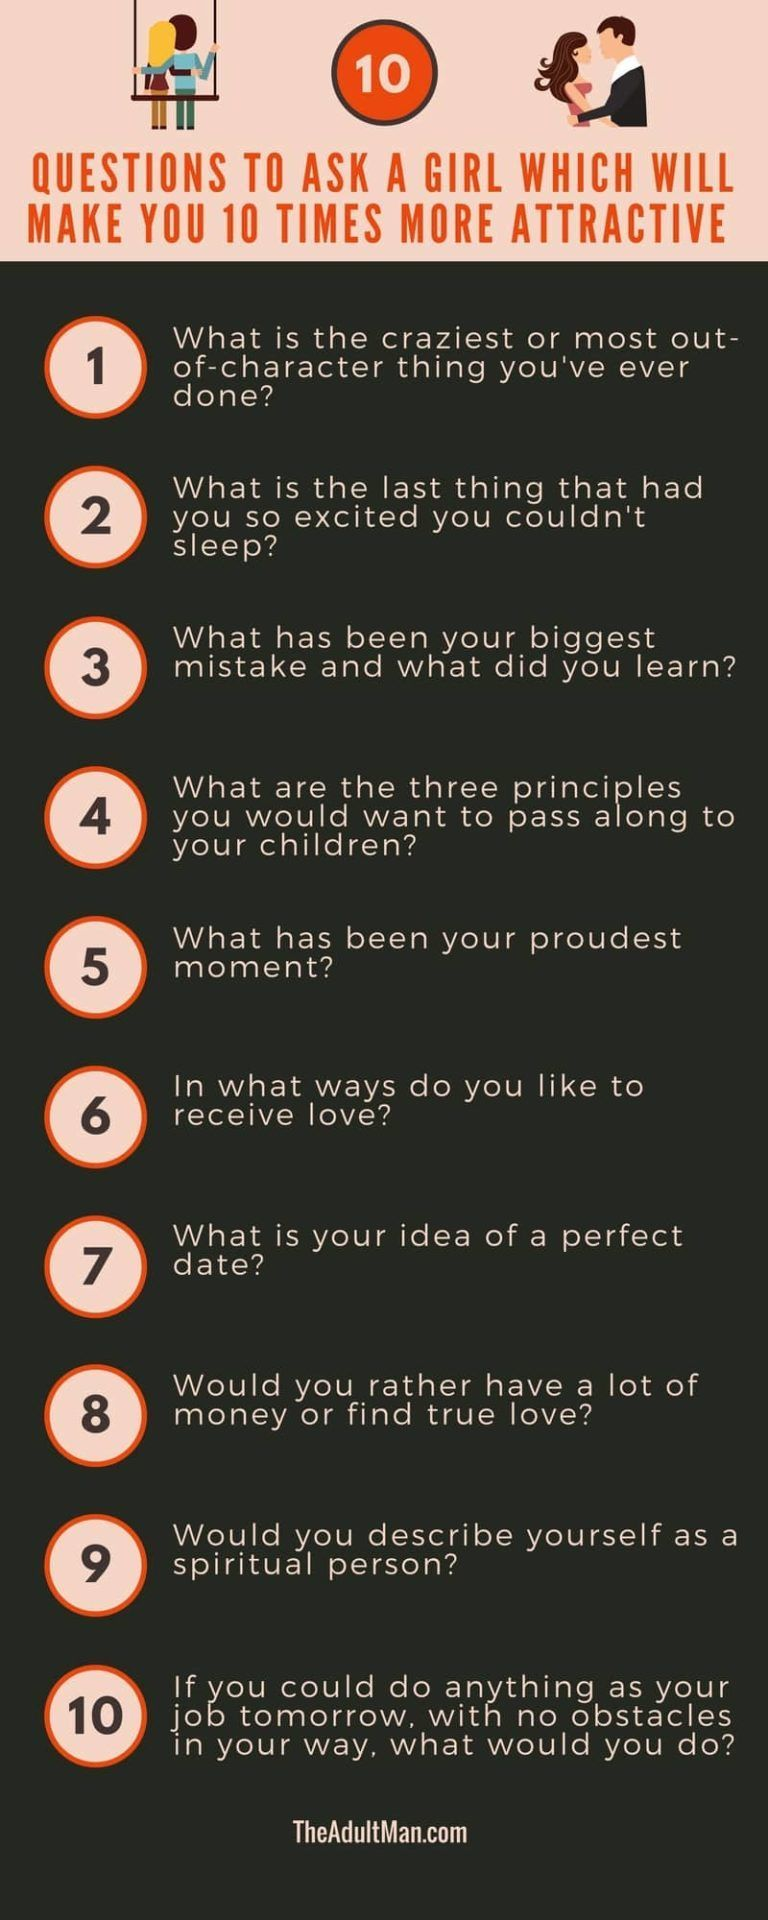 Infographic 10 Questions to Ask a Girl Which Will Make